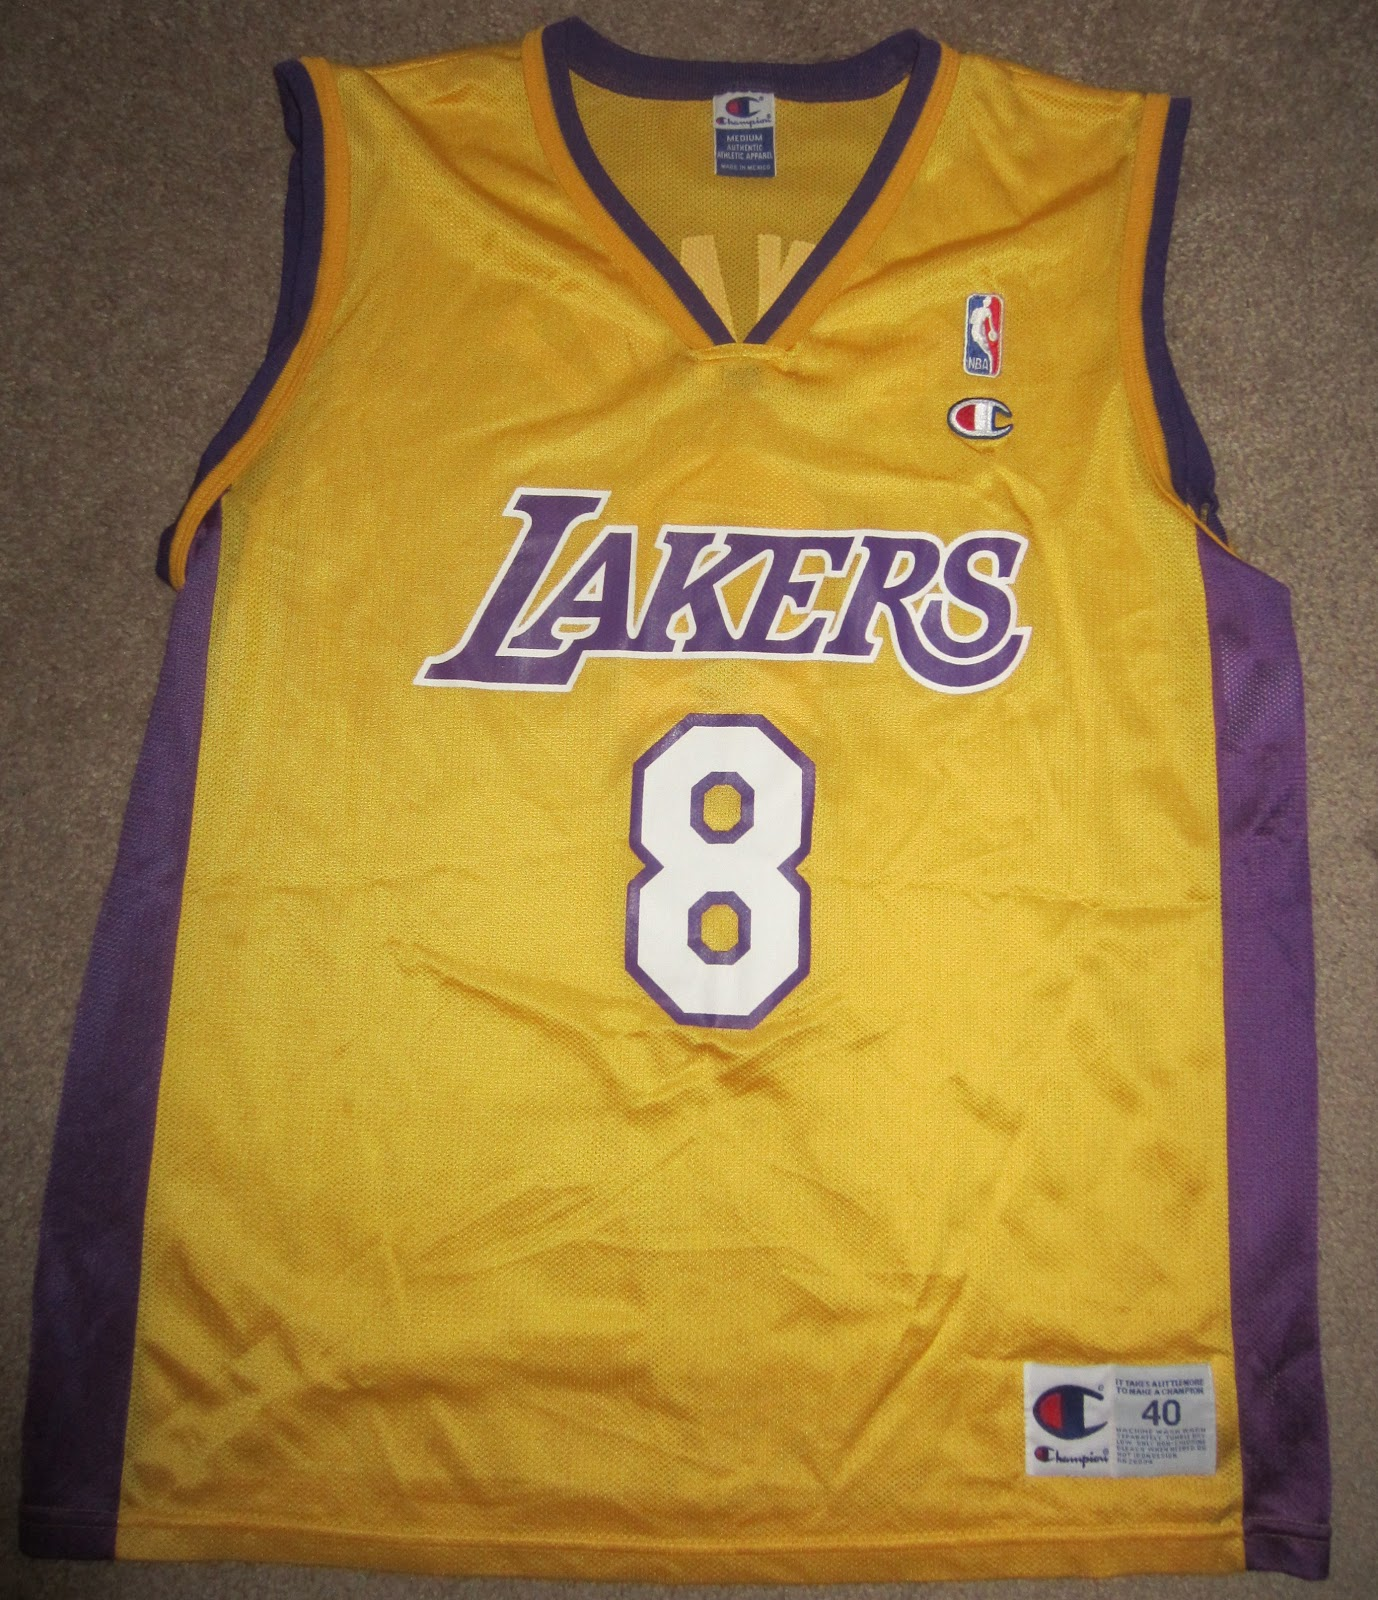 be5d7daa07a5 ... Nba Vintage Kobe Bryant Los Angeles Lakers Champion Jersey Size Medium  40 ...